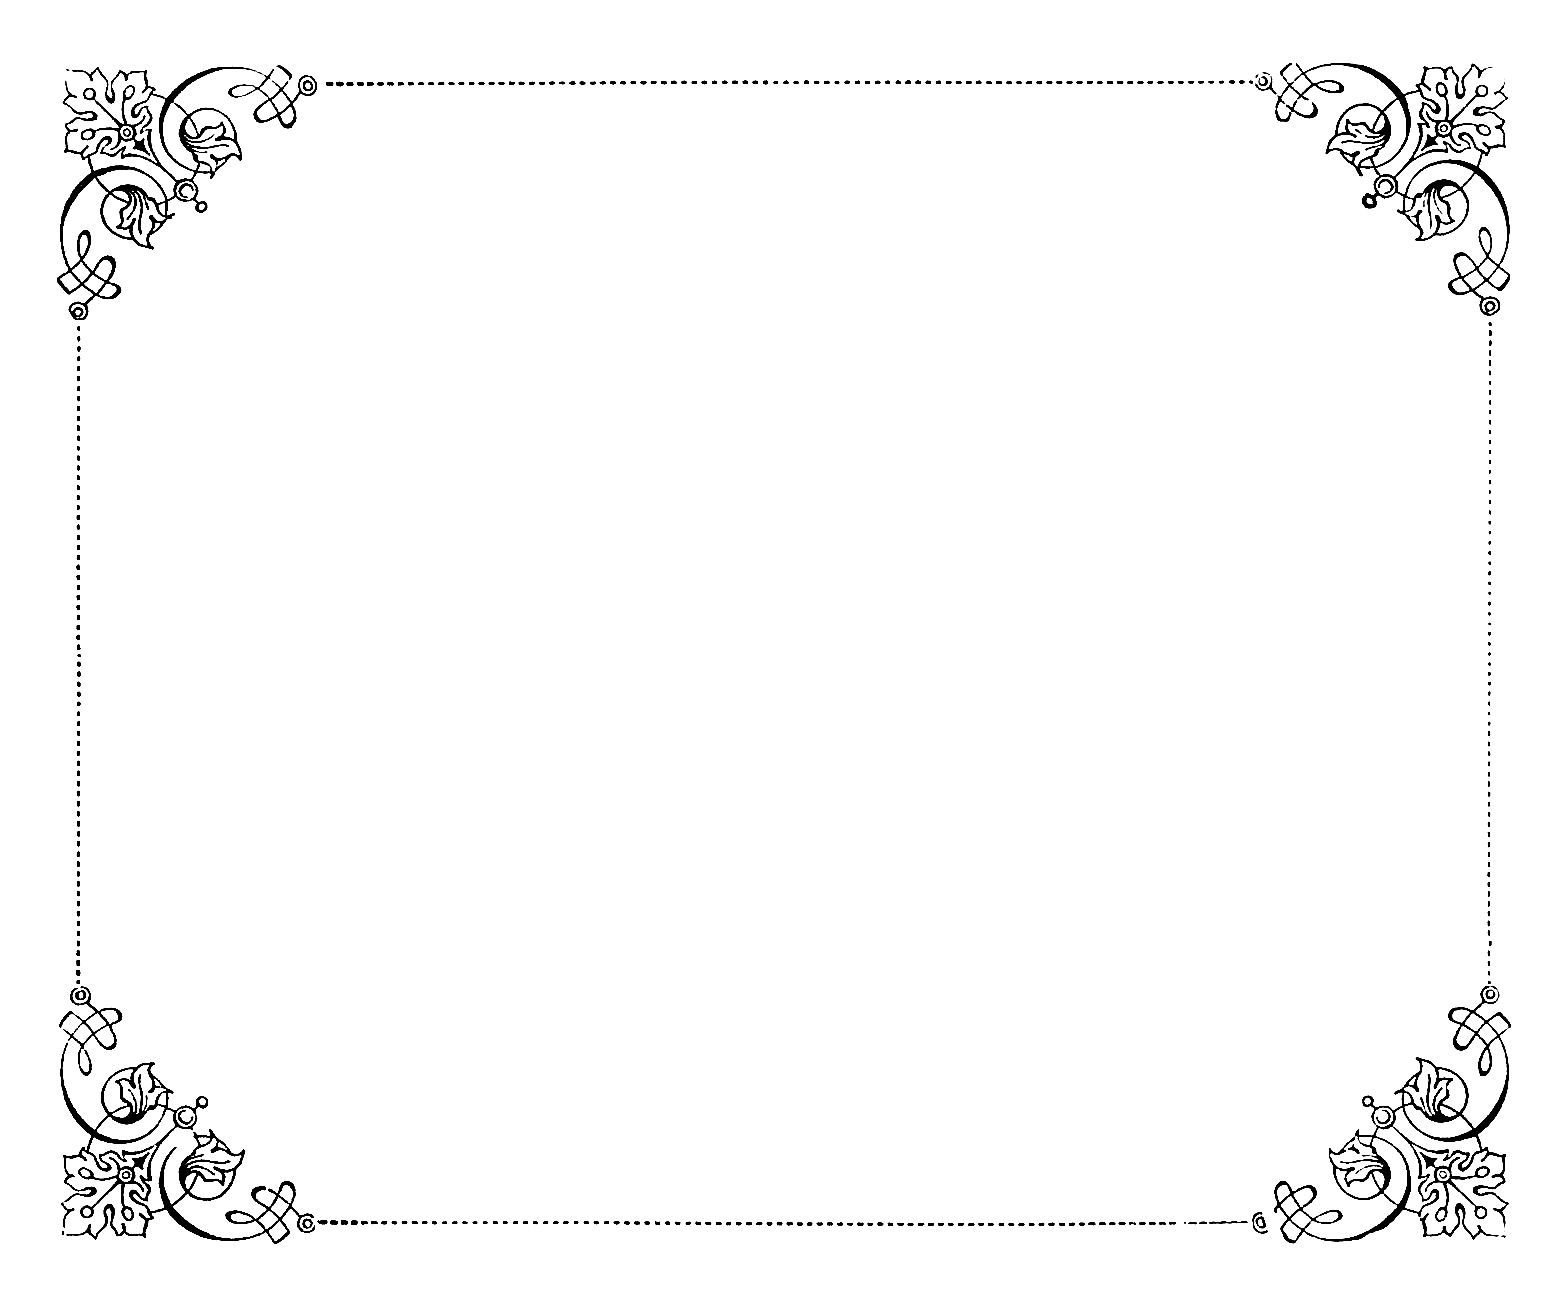 8 Fancy Paper Border Designs Images   Fancy Frame Borders, Black .  Paper Border Designs Templates